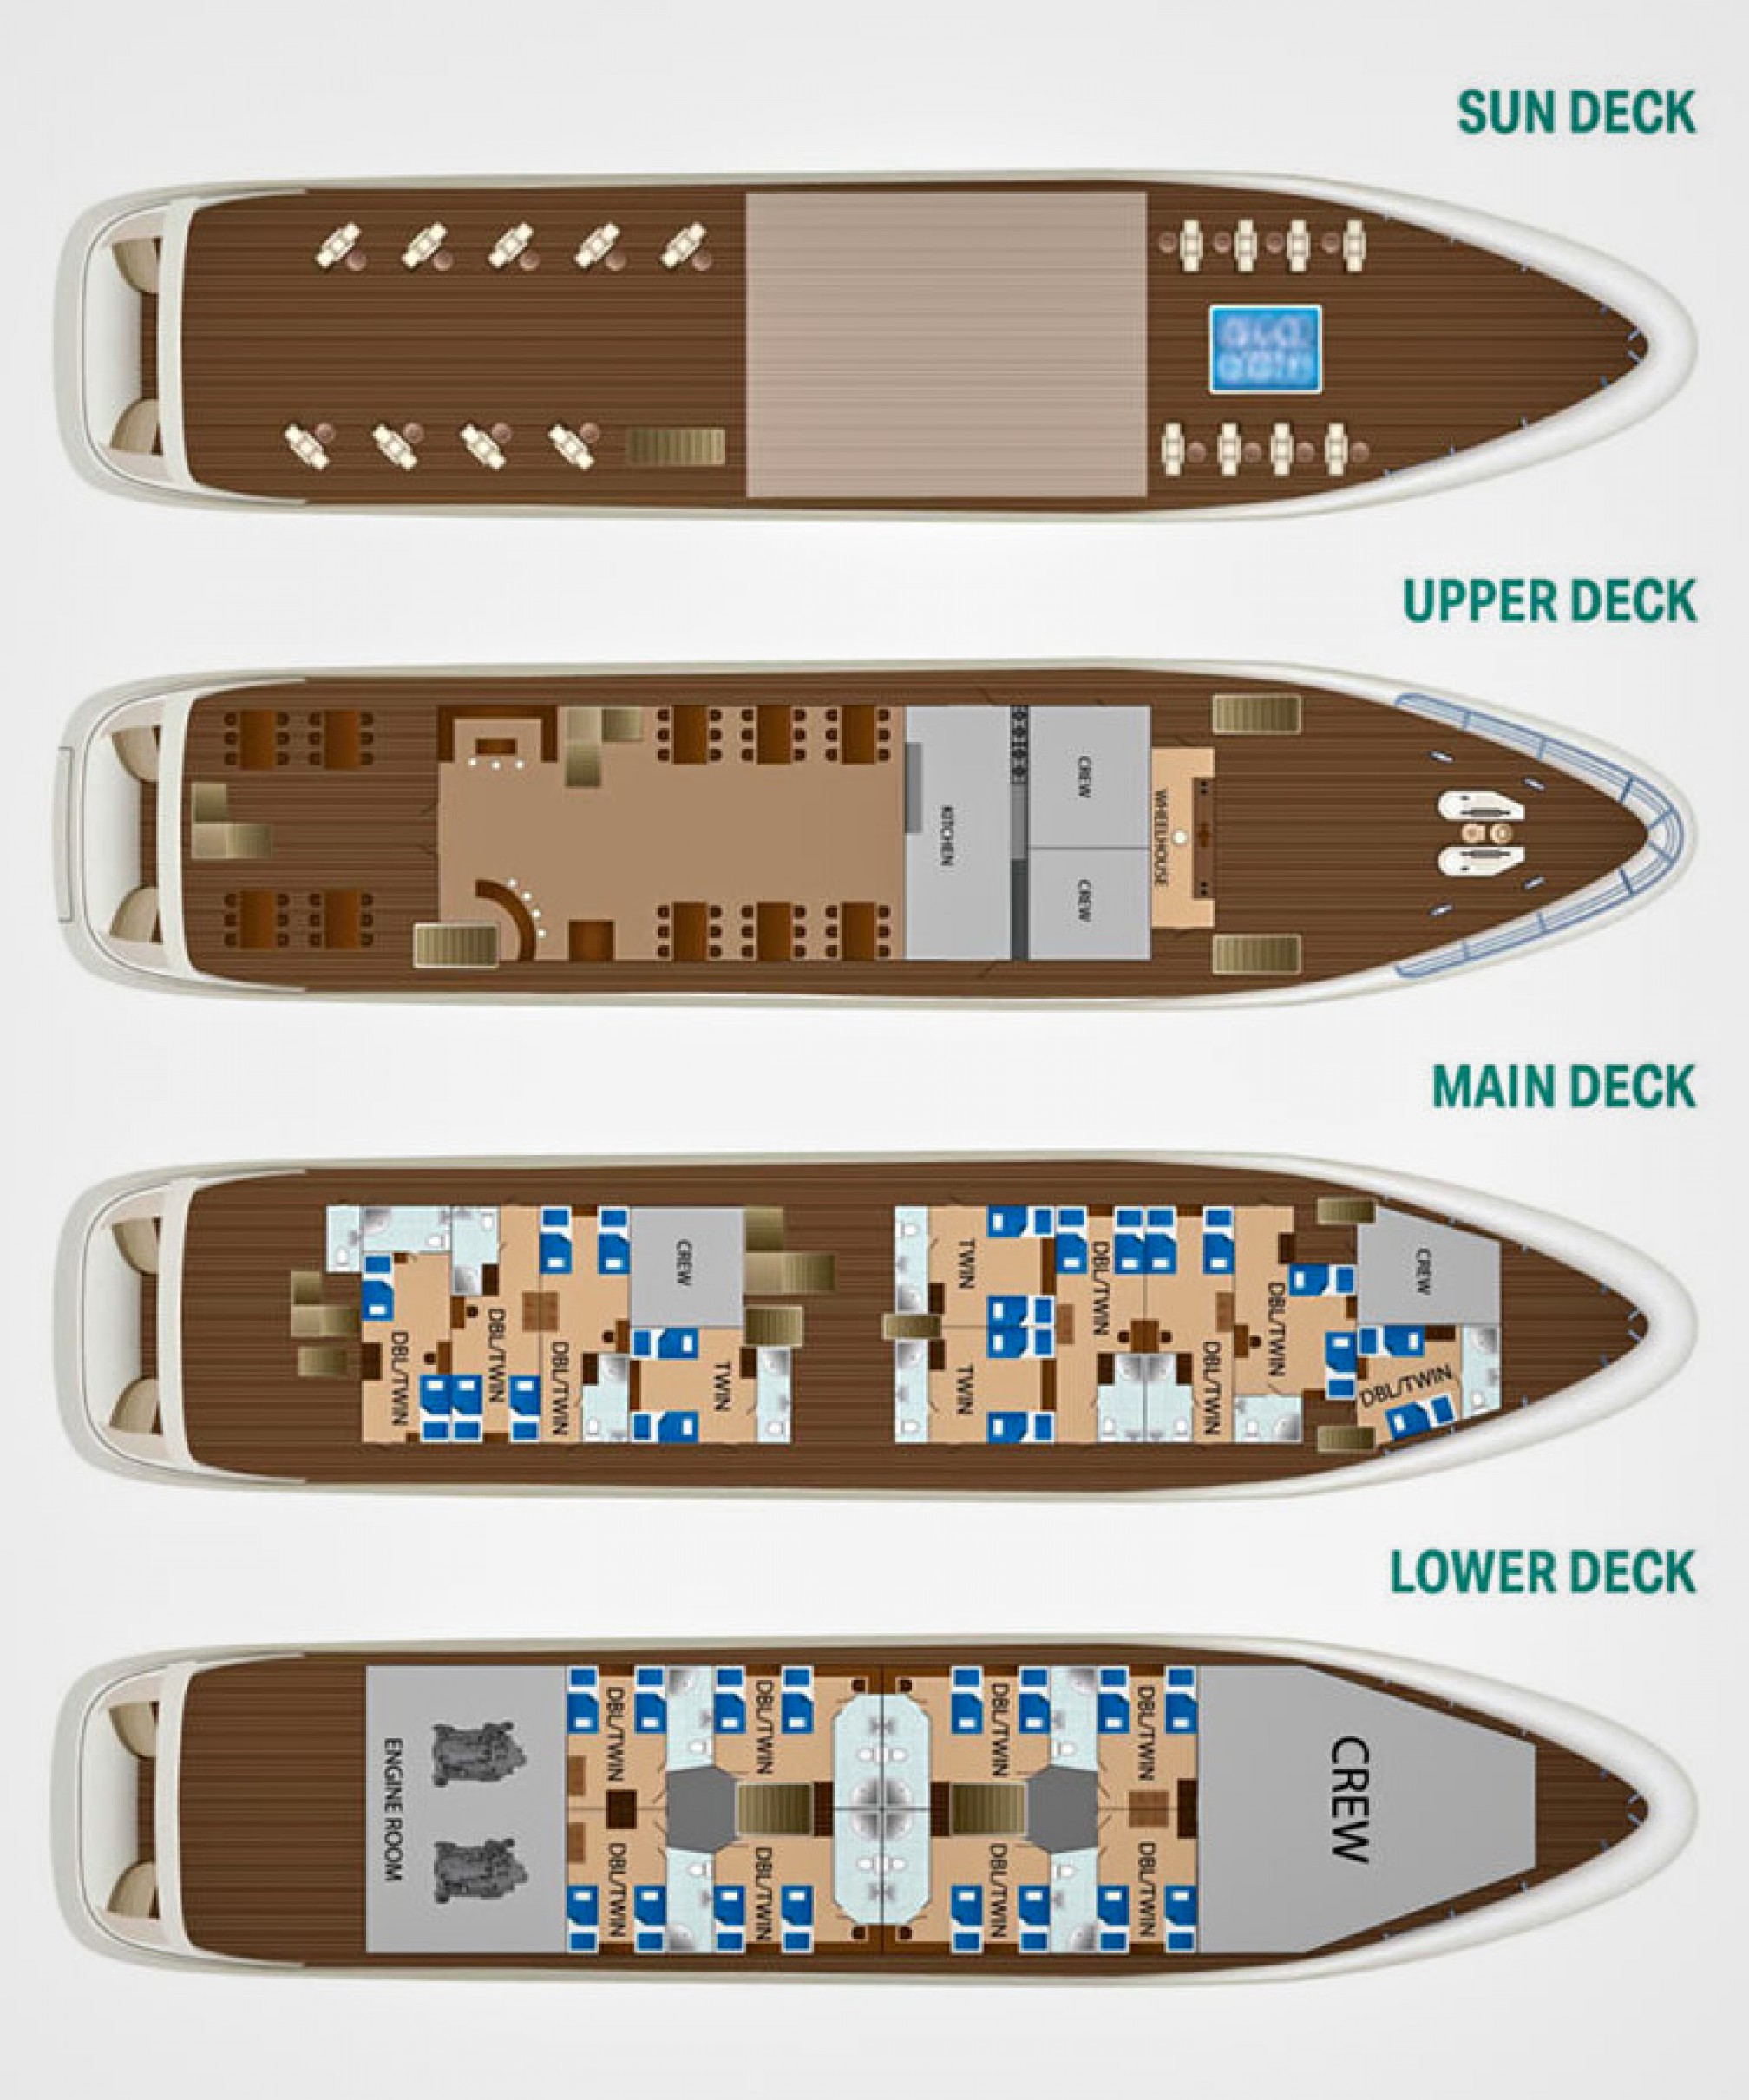 Rental yacht Aurora 36 pax layout